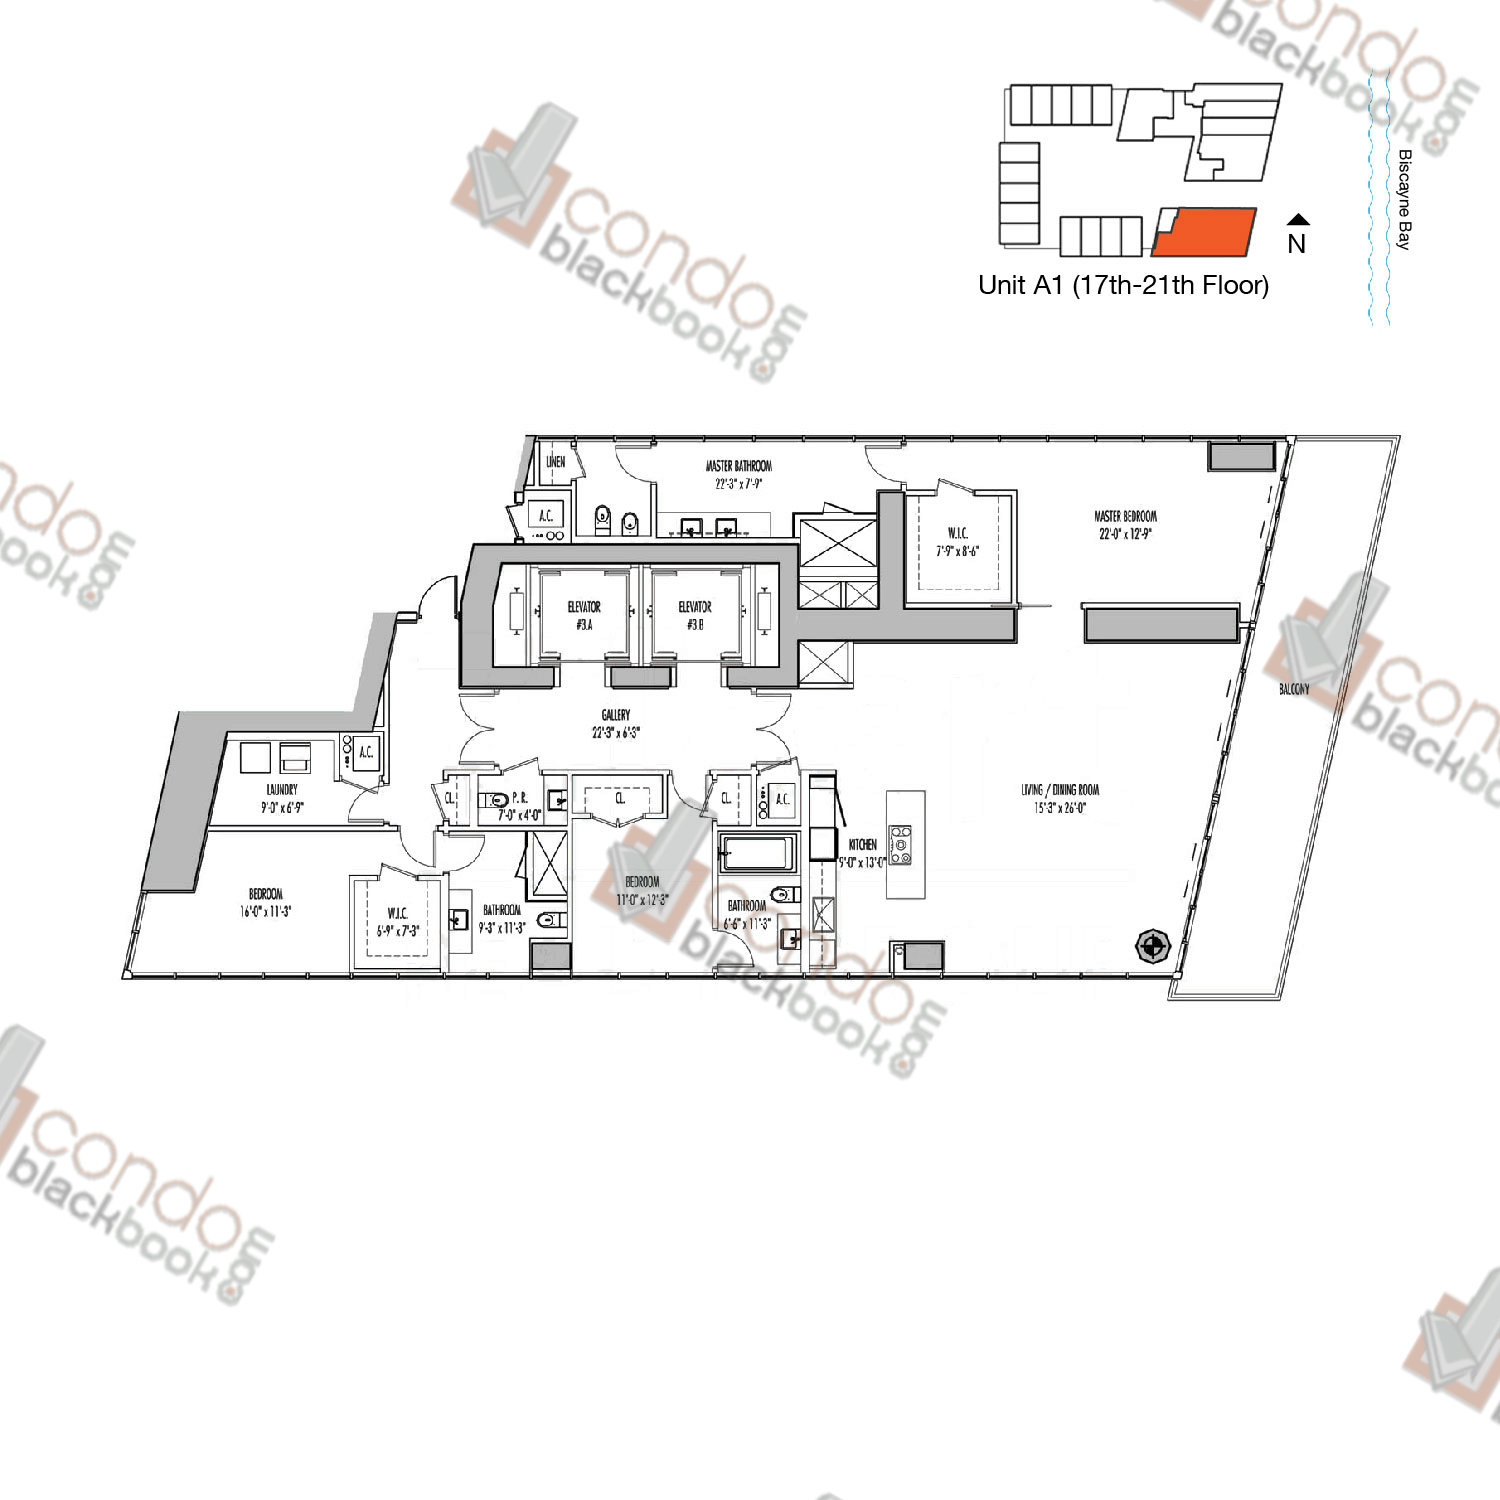 Floor plan for Marquis Downtown Miami Miami, model A, line 01, 3/2.5 bedrooms, 2,888 sq ft